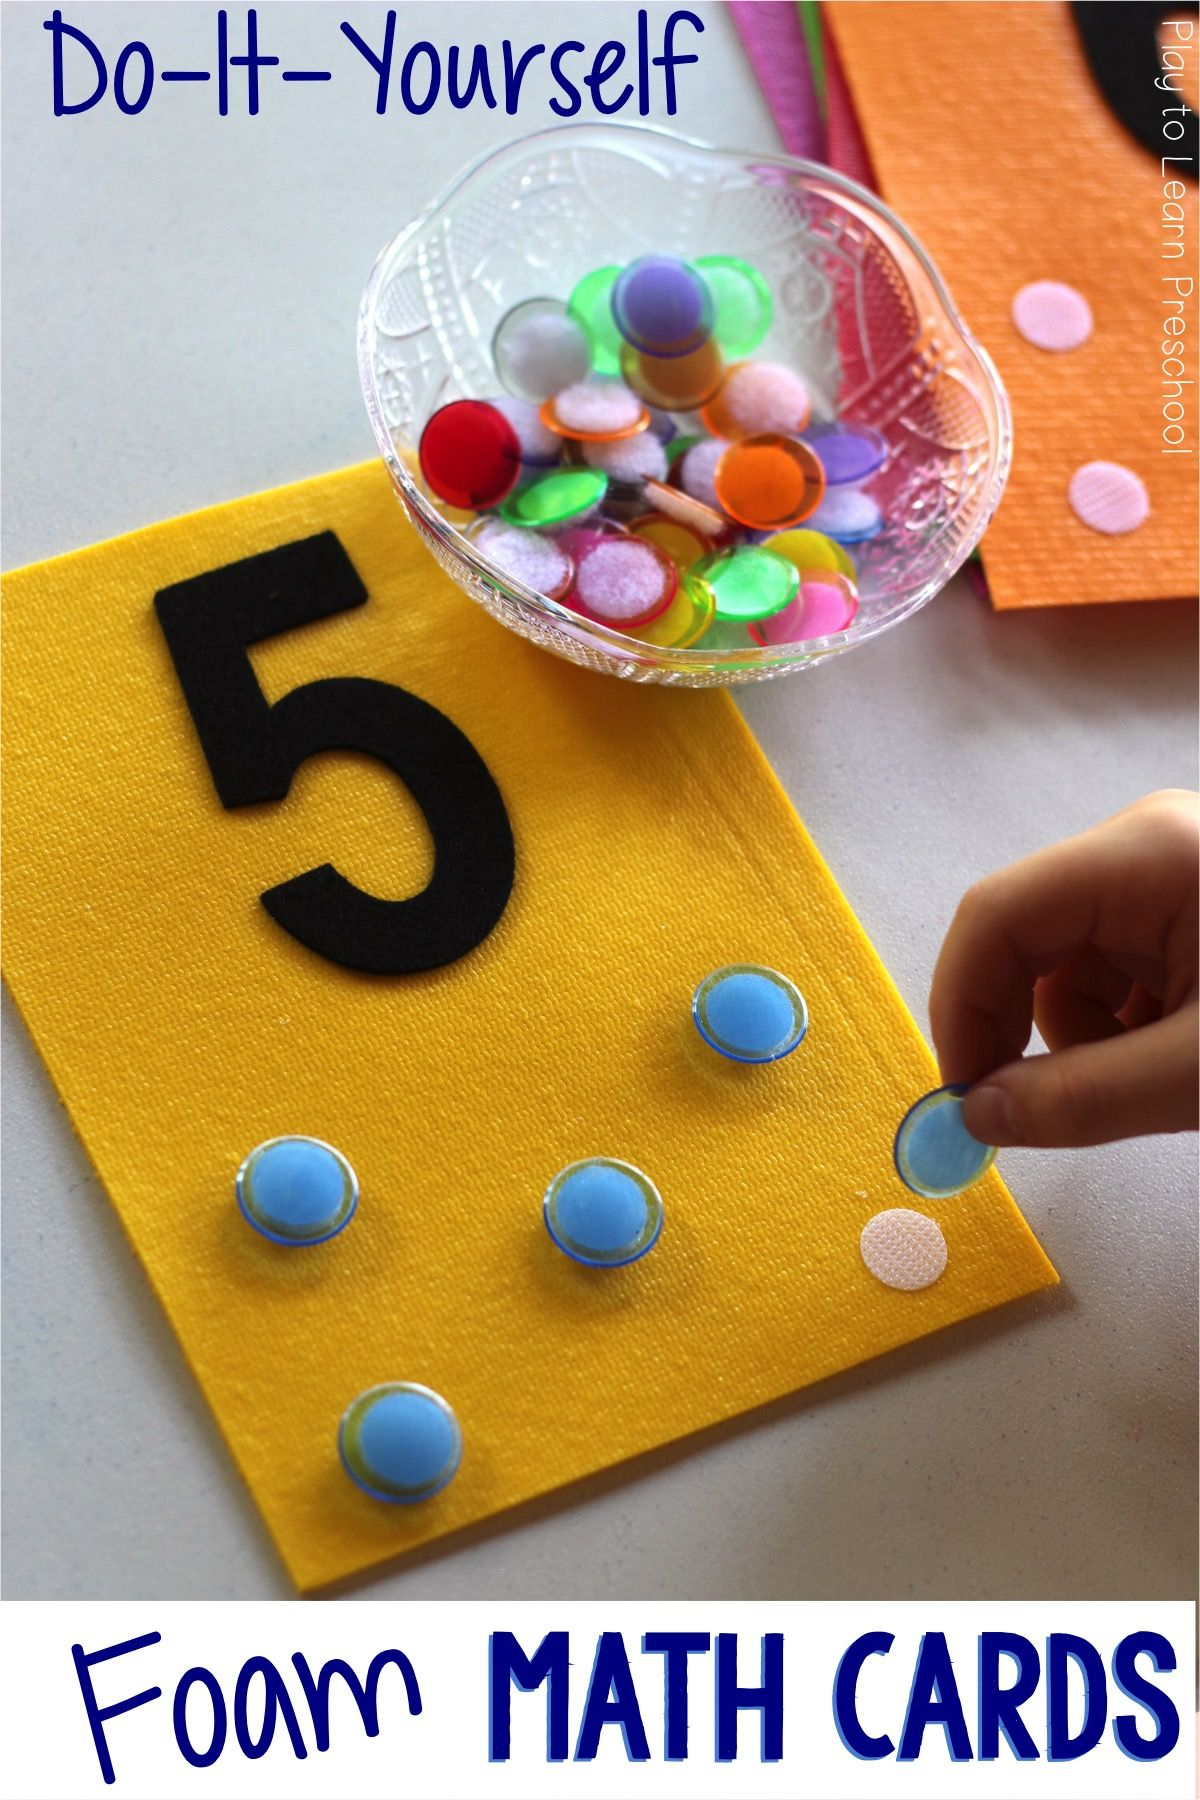 These Easy Foam Math Cards Hit The Spot With Students